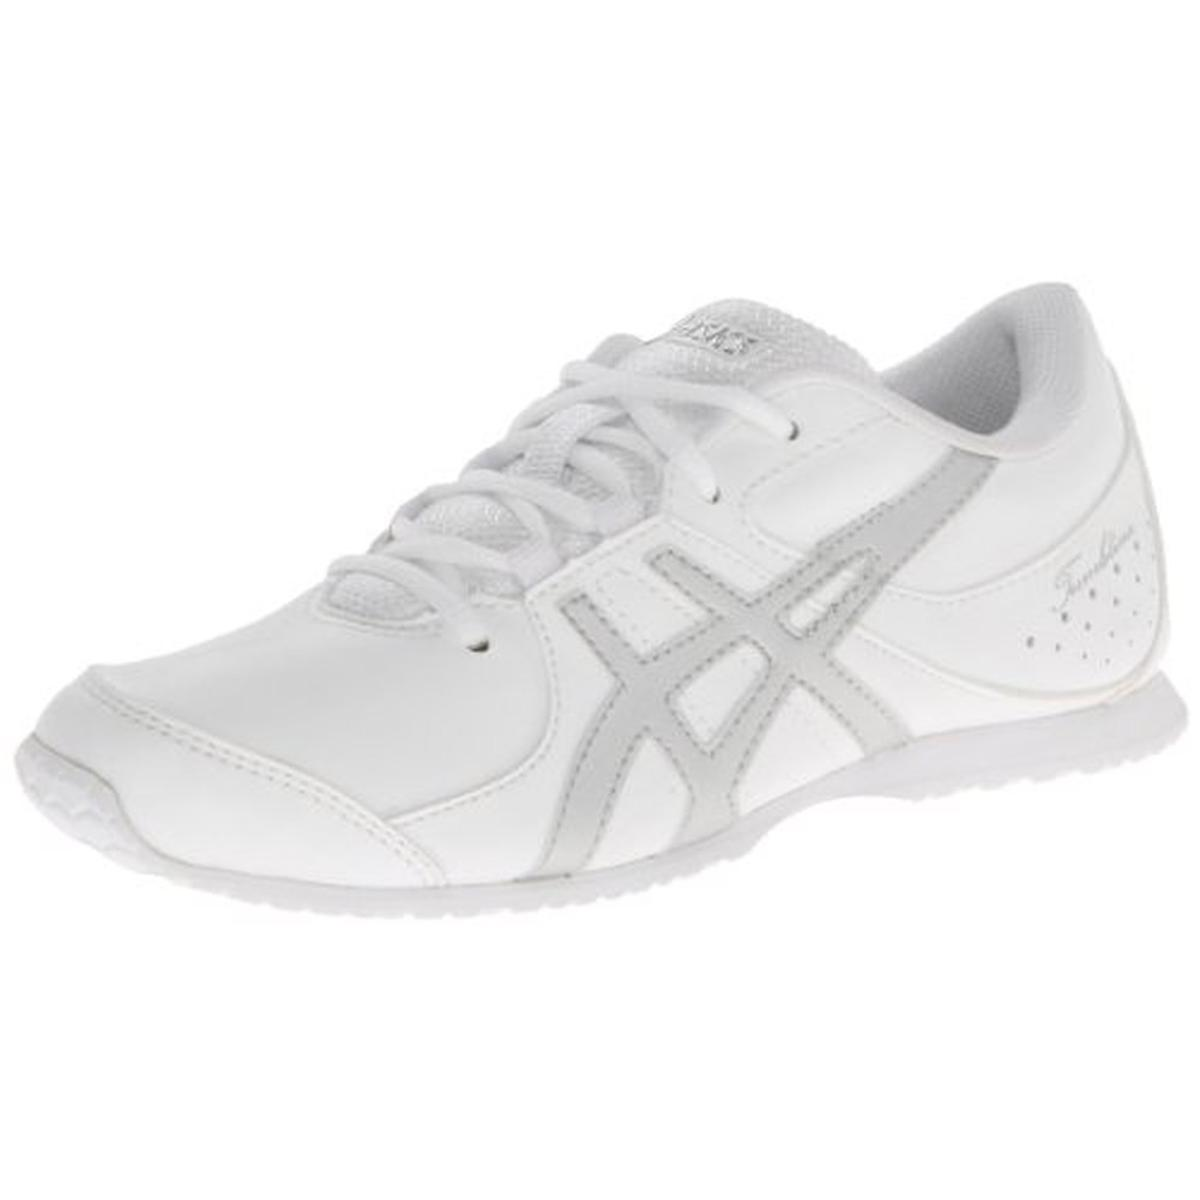 Asics Girls Tumblina Contrast Trim Faux Leather Casual Shoes